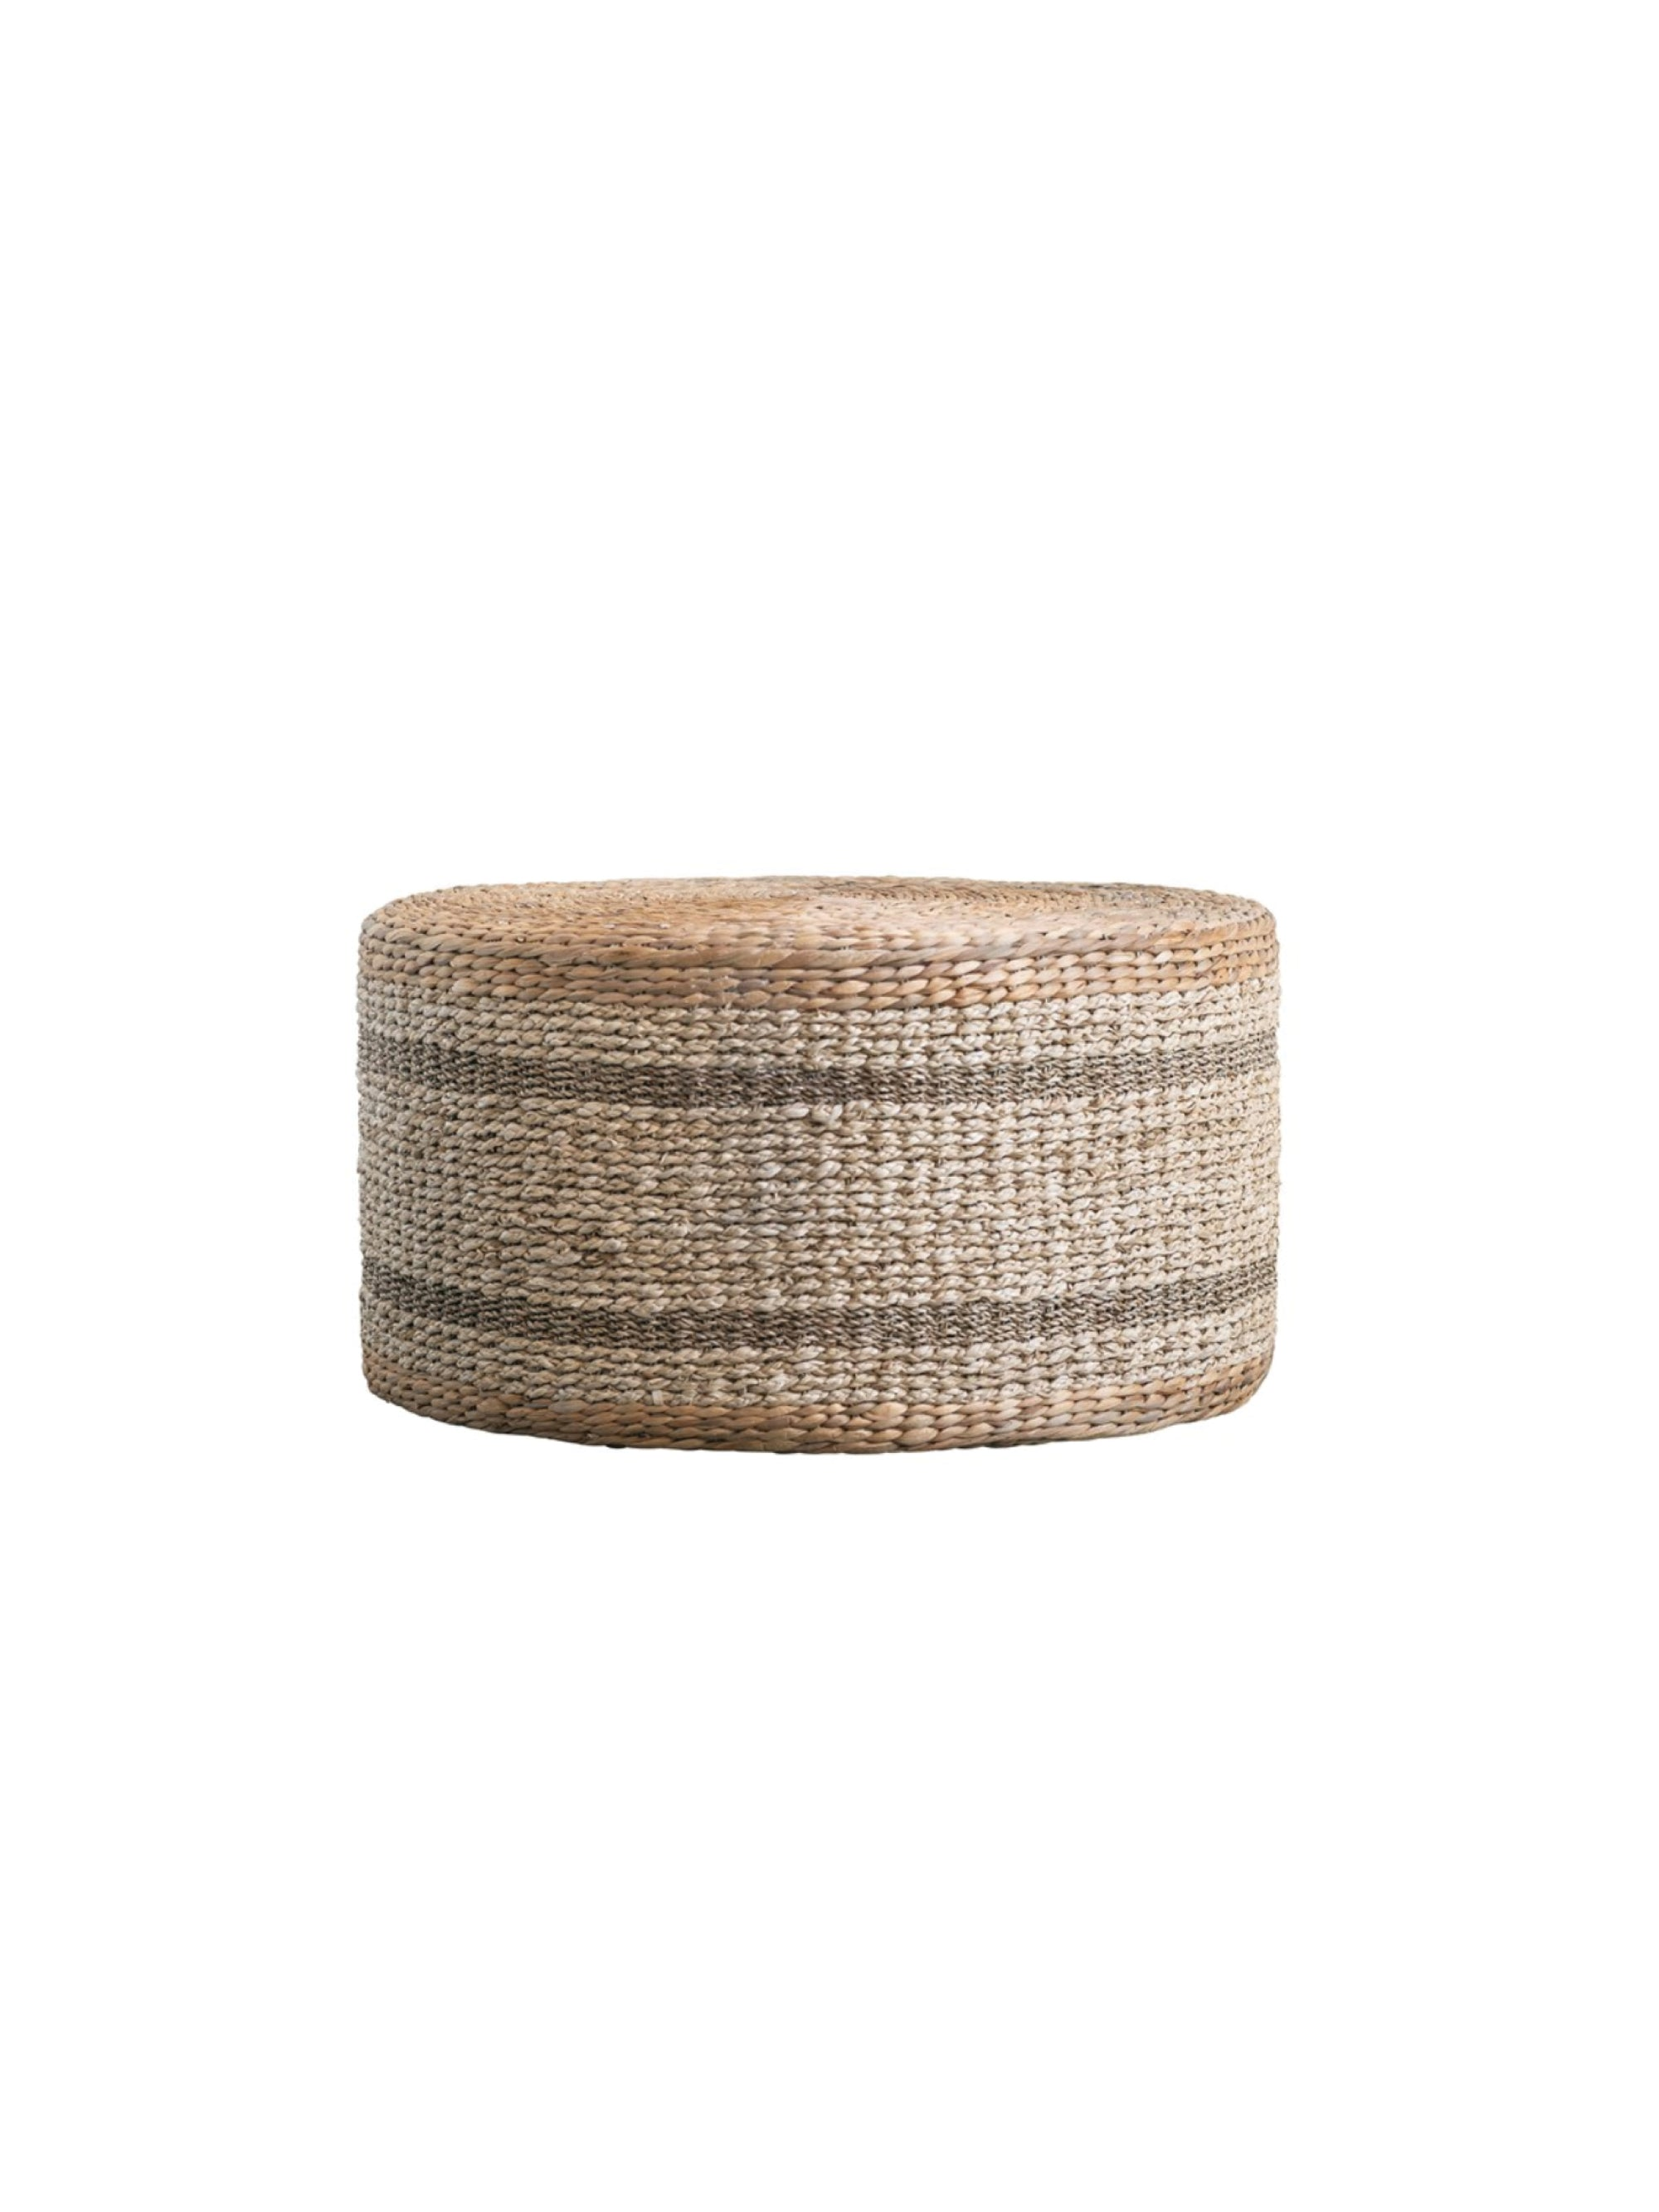 Natural Woven Hyacinth & Seagrass Pouf